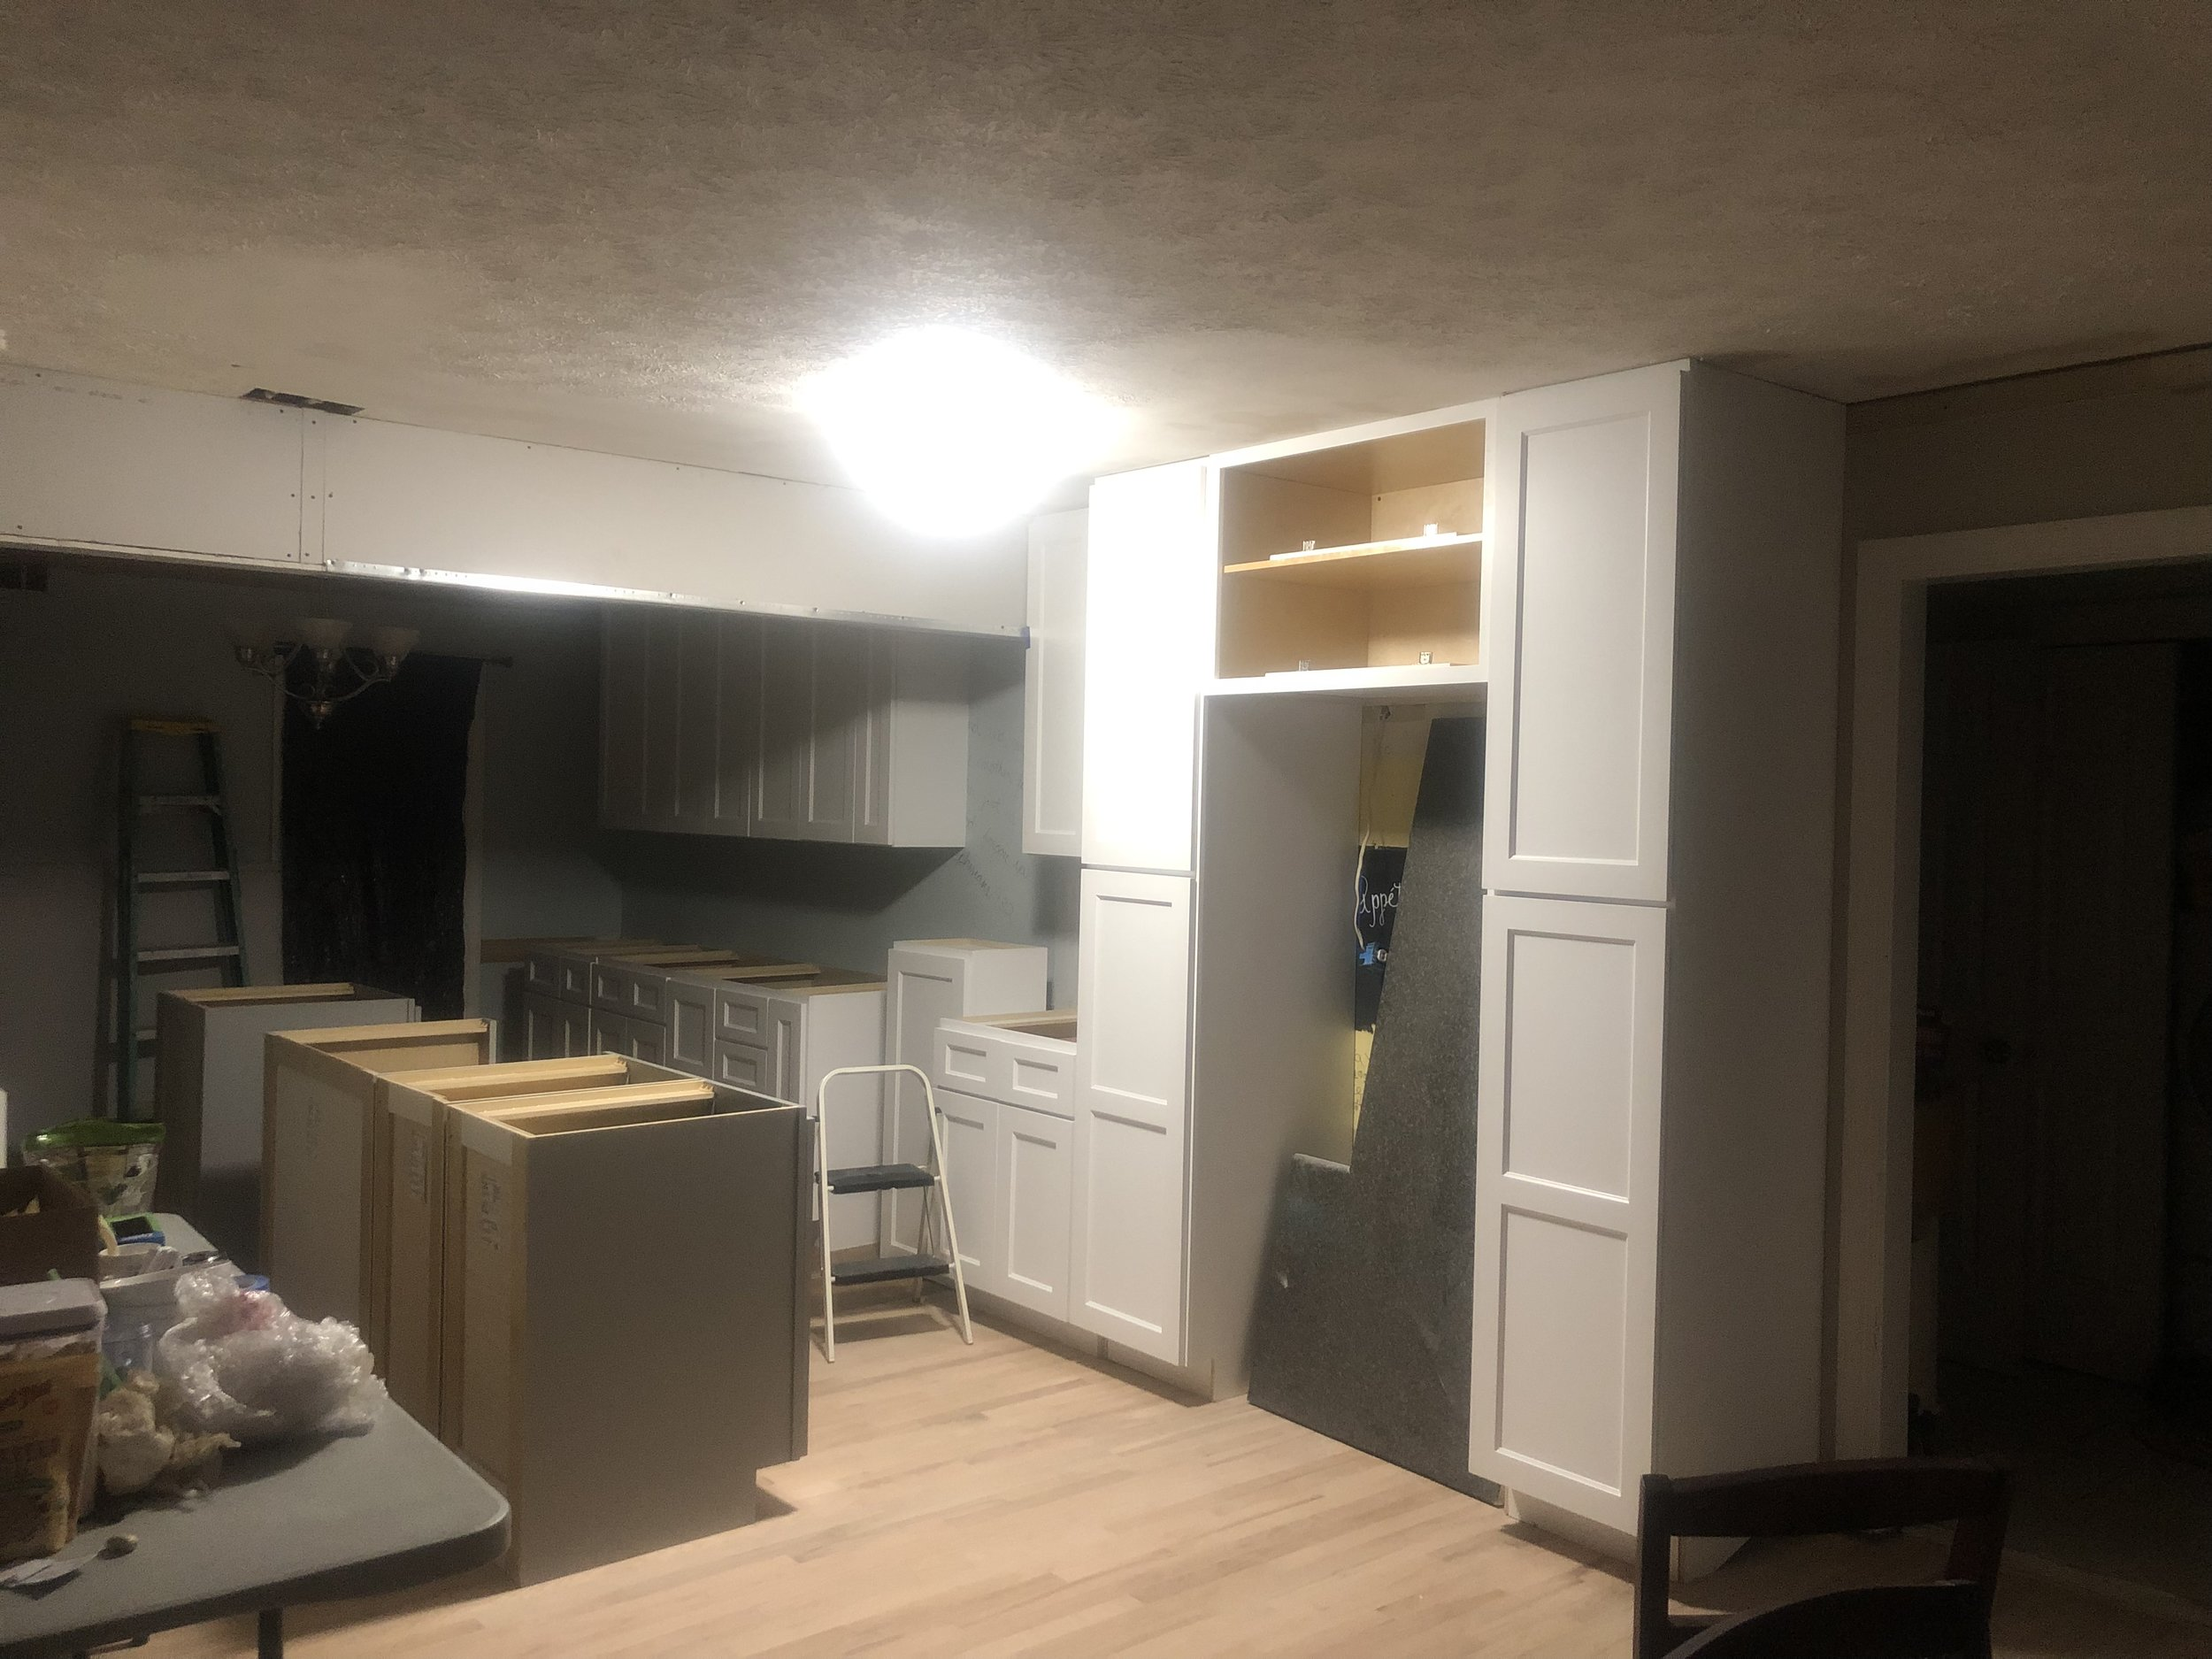 The wall separating the dining room and kitchen was a load-bearing wall, so a header was necessary.